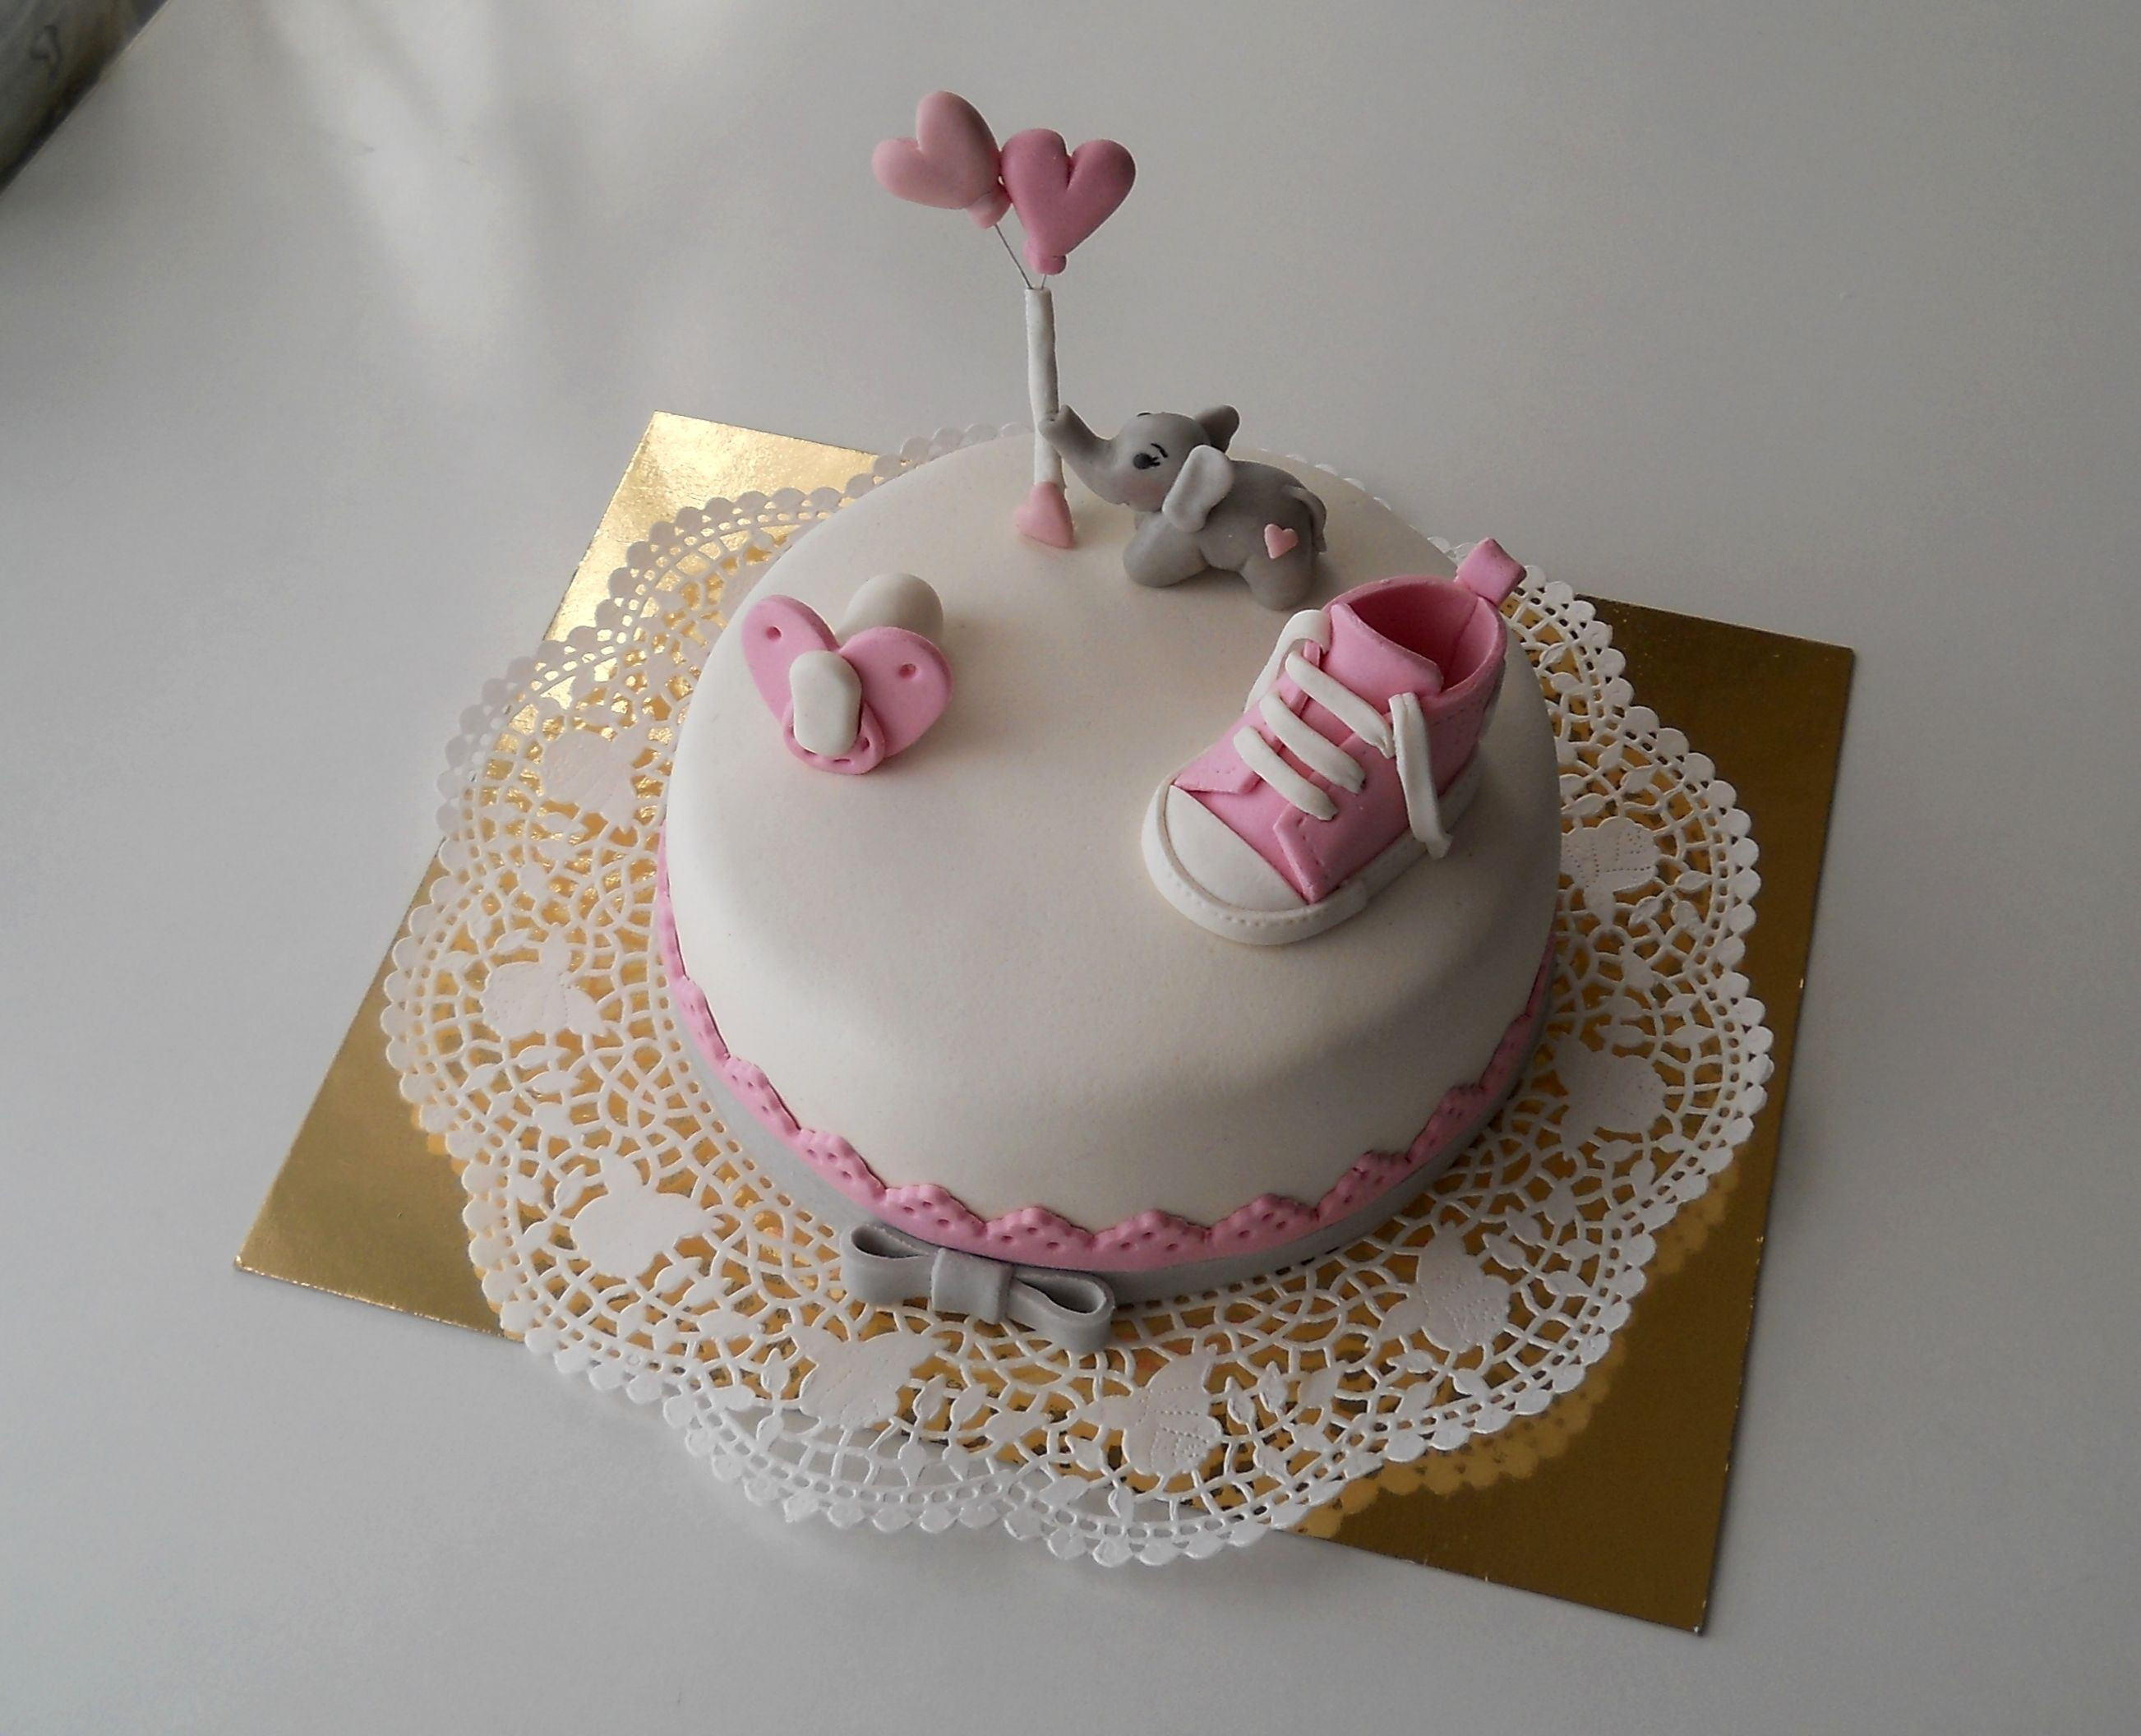 Baby shower cake for girl https://www.facebook.com/marcipandiszek/photos/a.400290863391453.101186.327363434017530/821227384631130/?type=1&theater